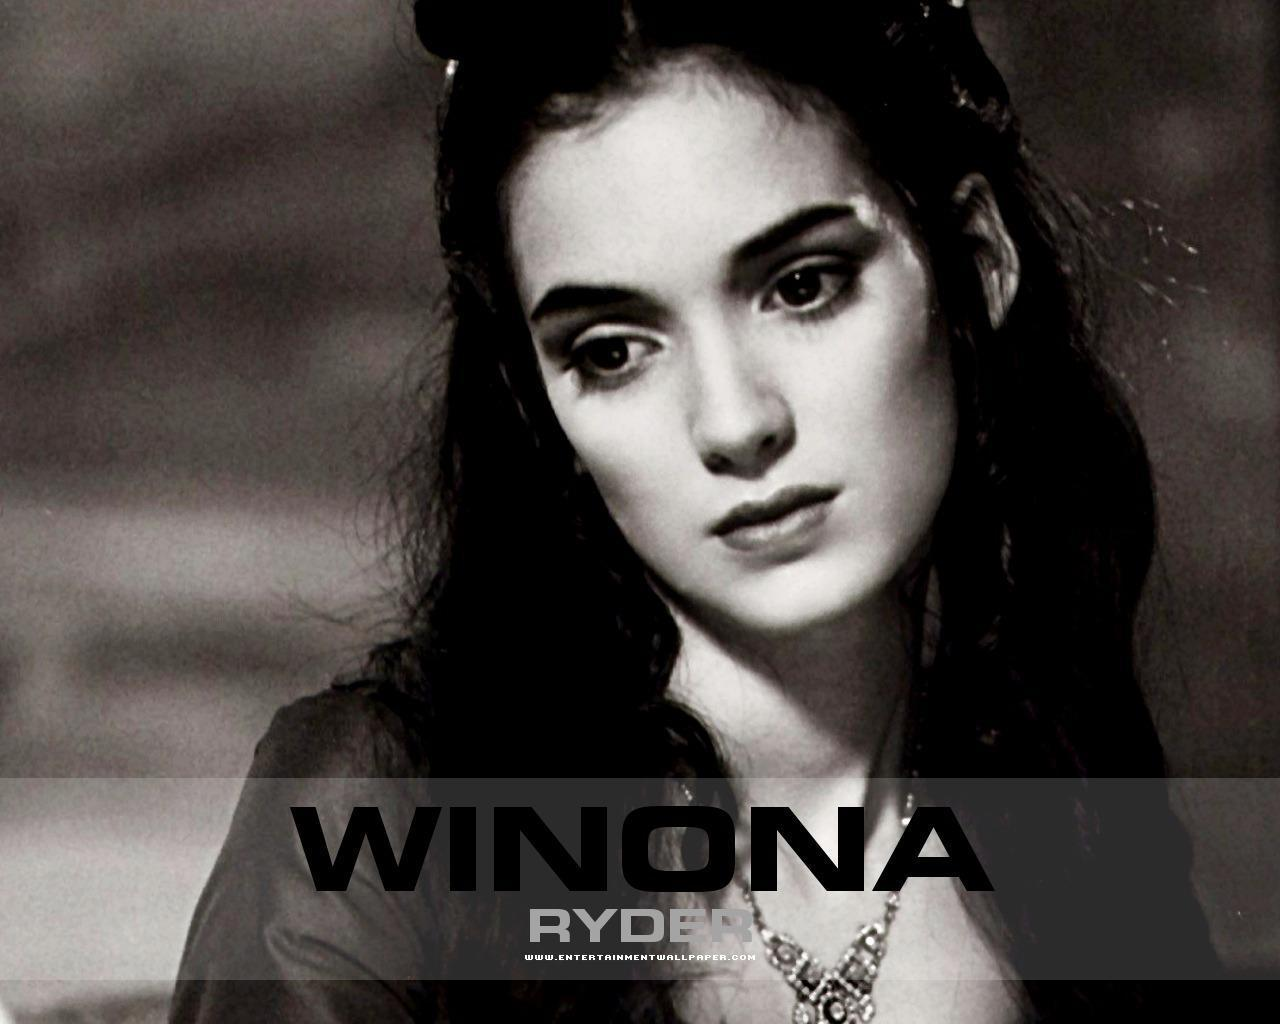 wallpaper winona ryder high - photo #21